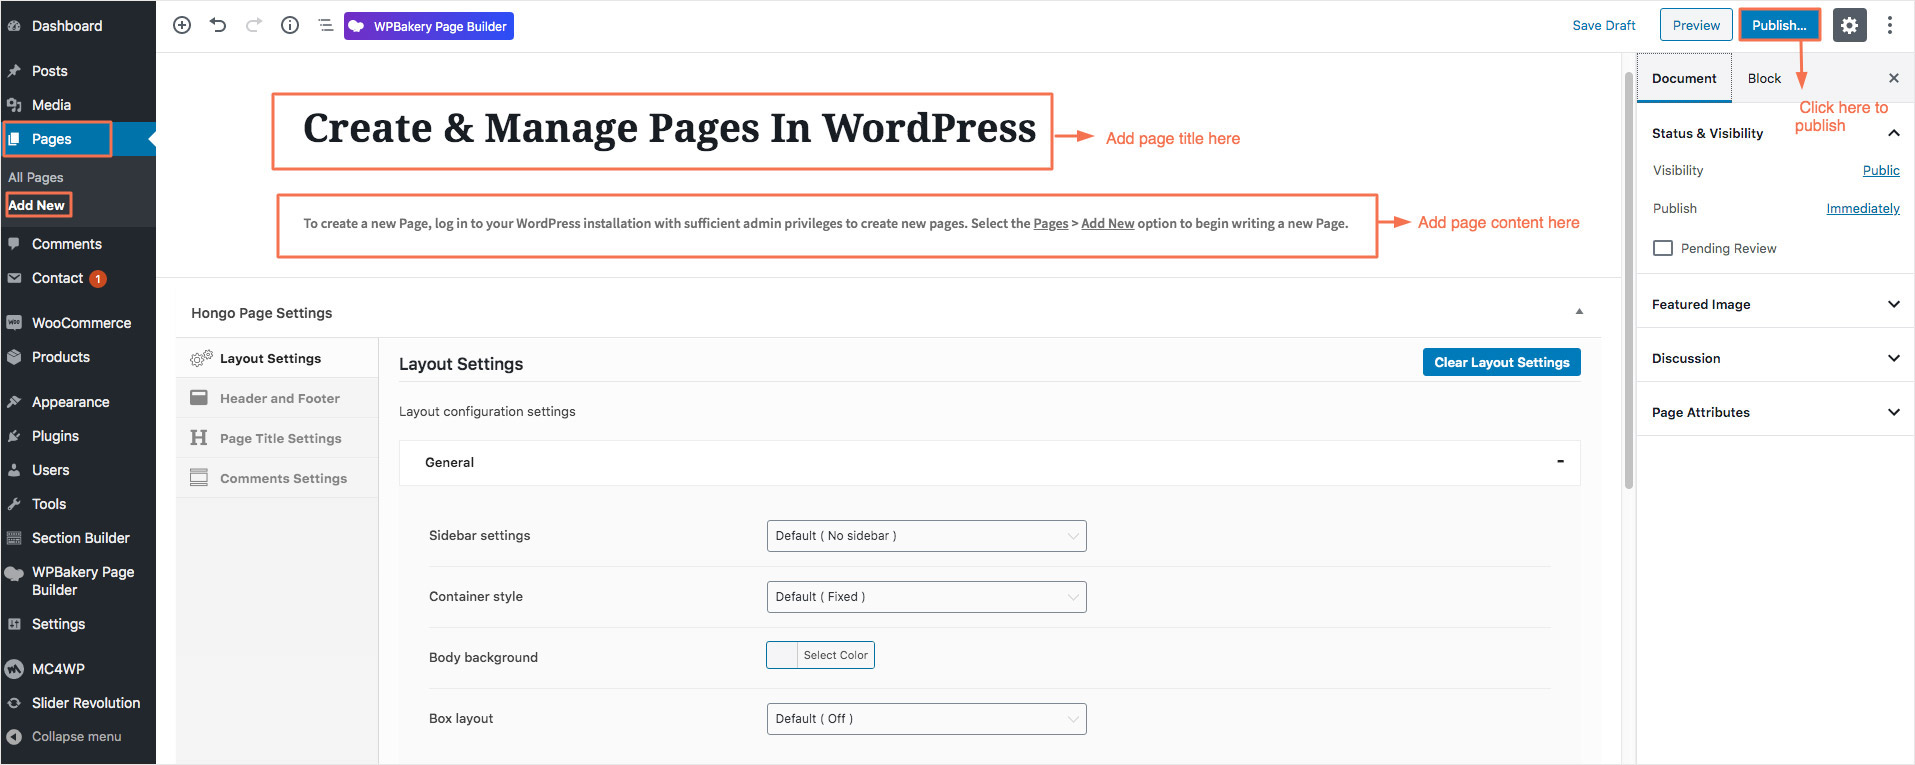 my sidebar is not showing up on my pages in wordpress